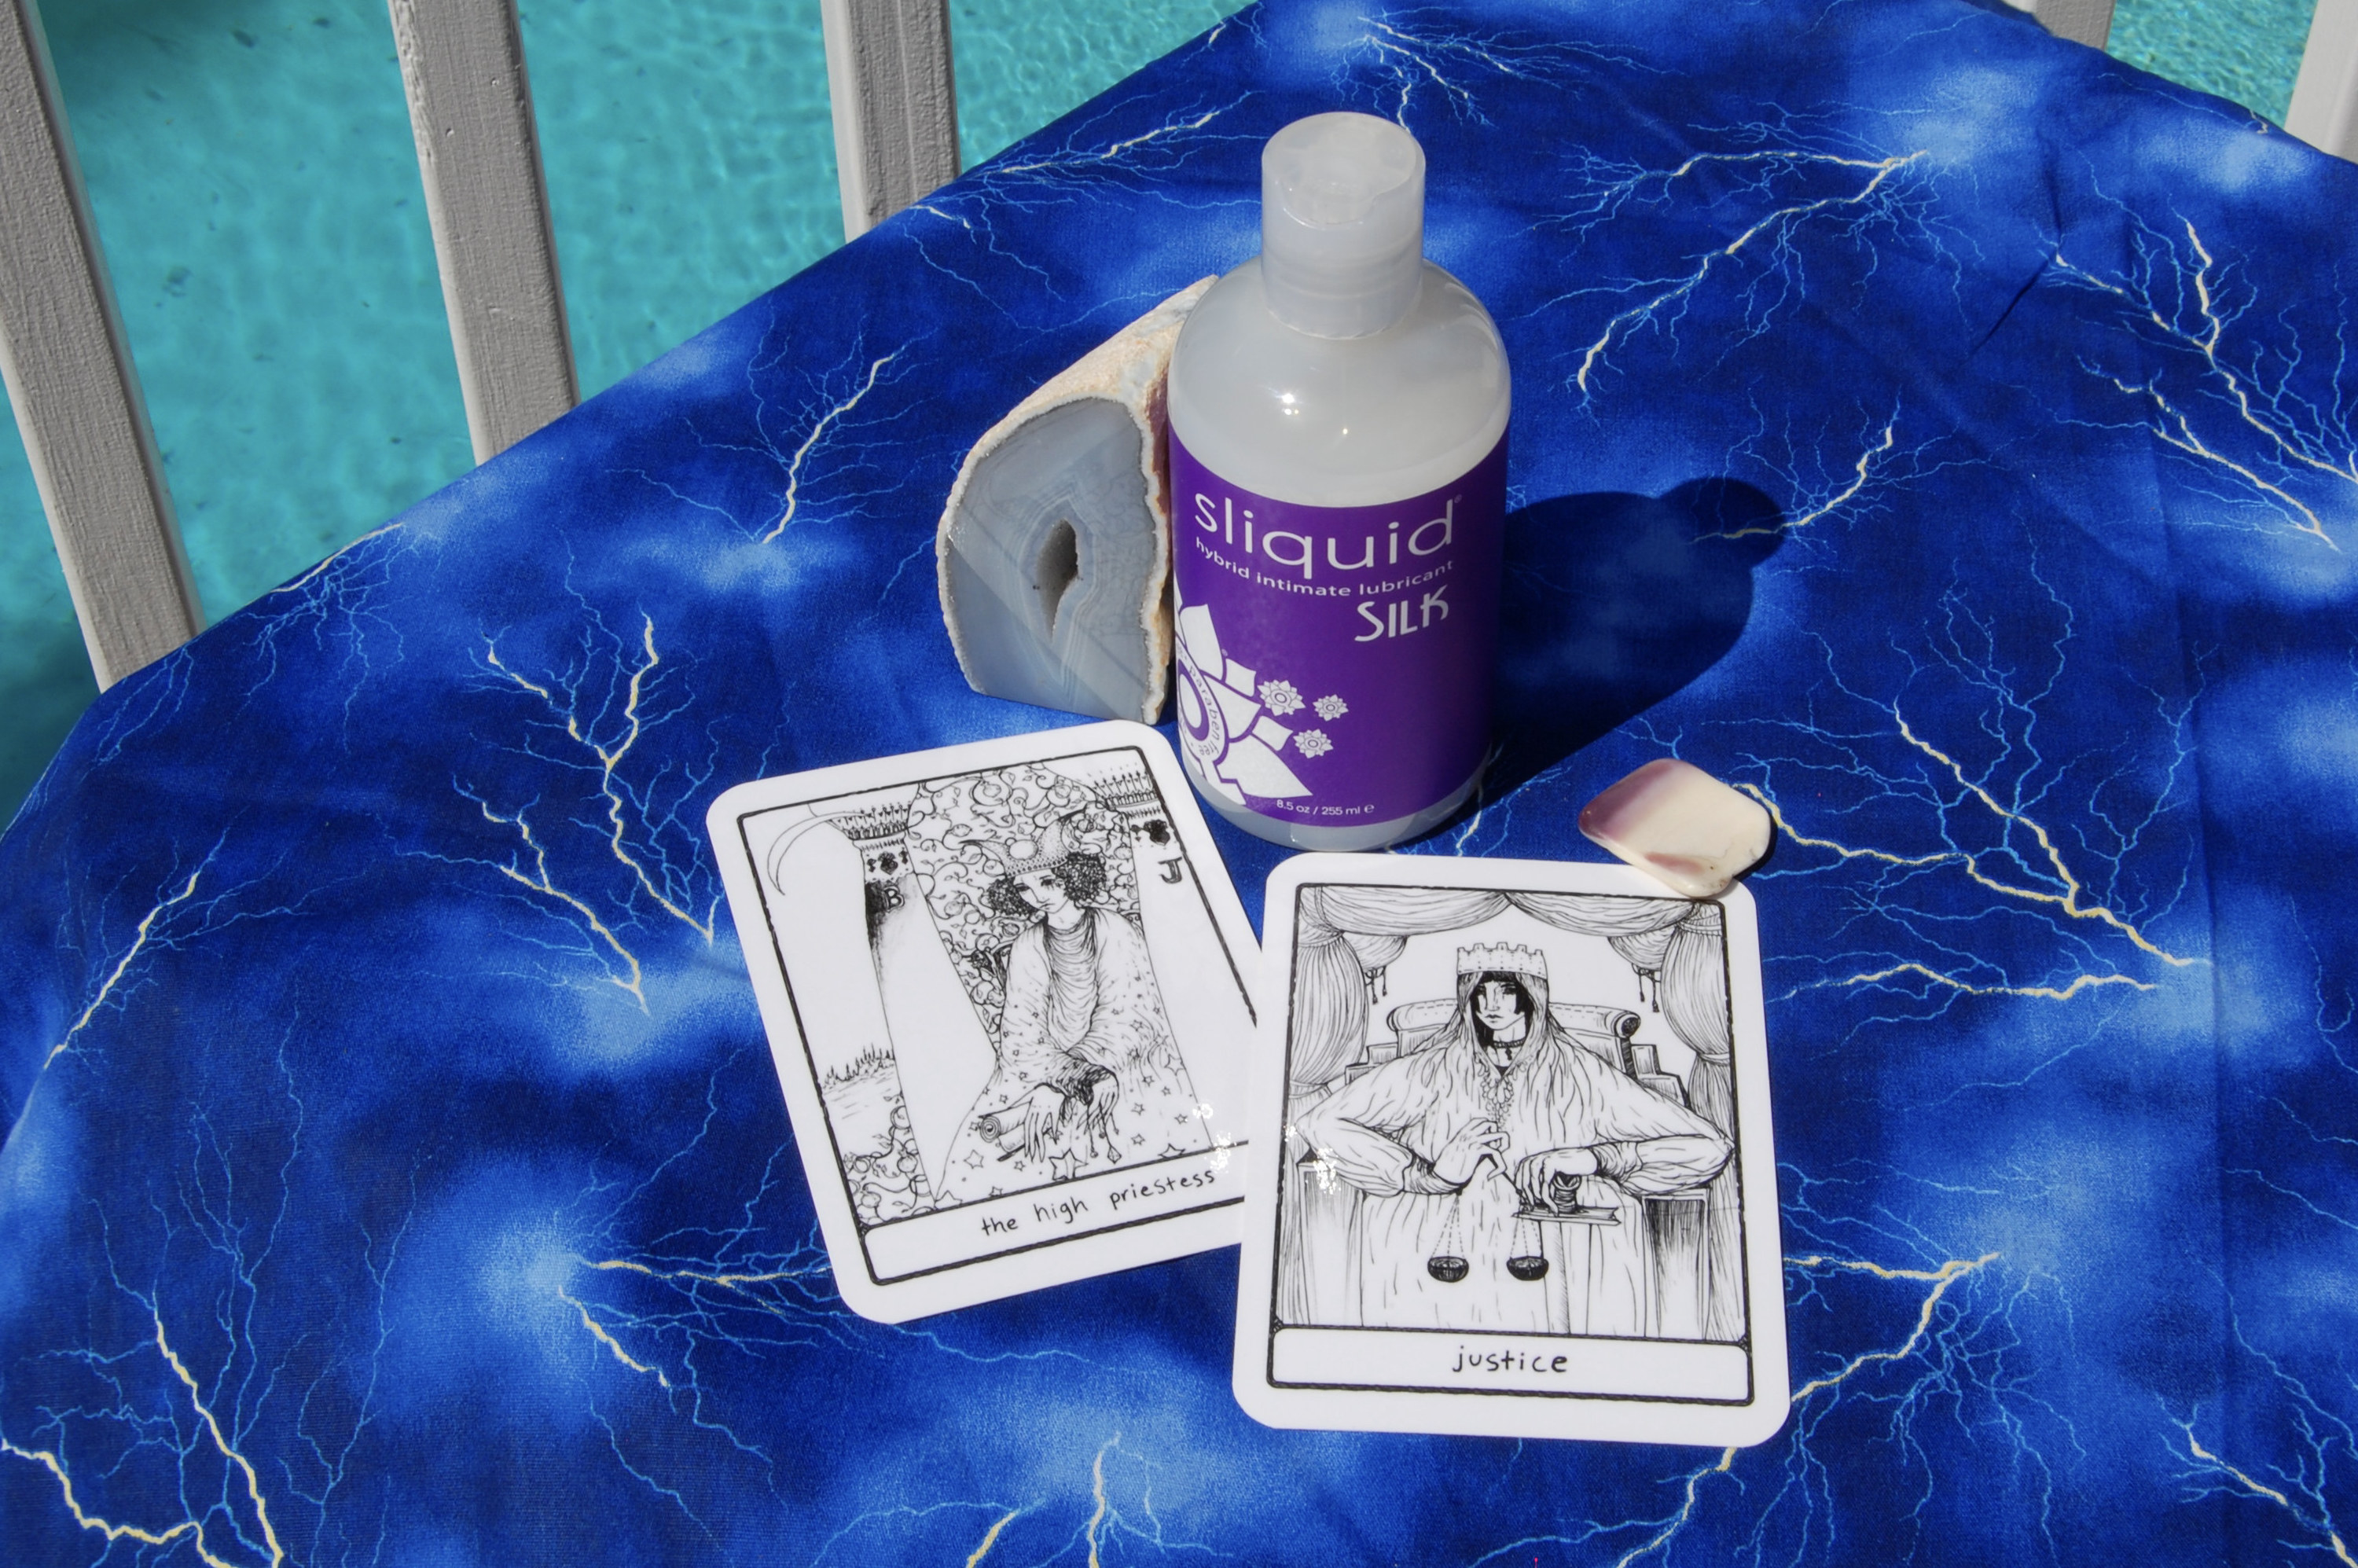 Photo of Sliquid Silk with two tarot cards (The High Priestess and Justice) plus a geode and small, square-shaped shell